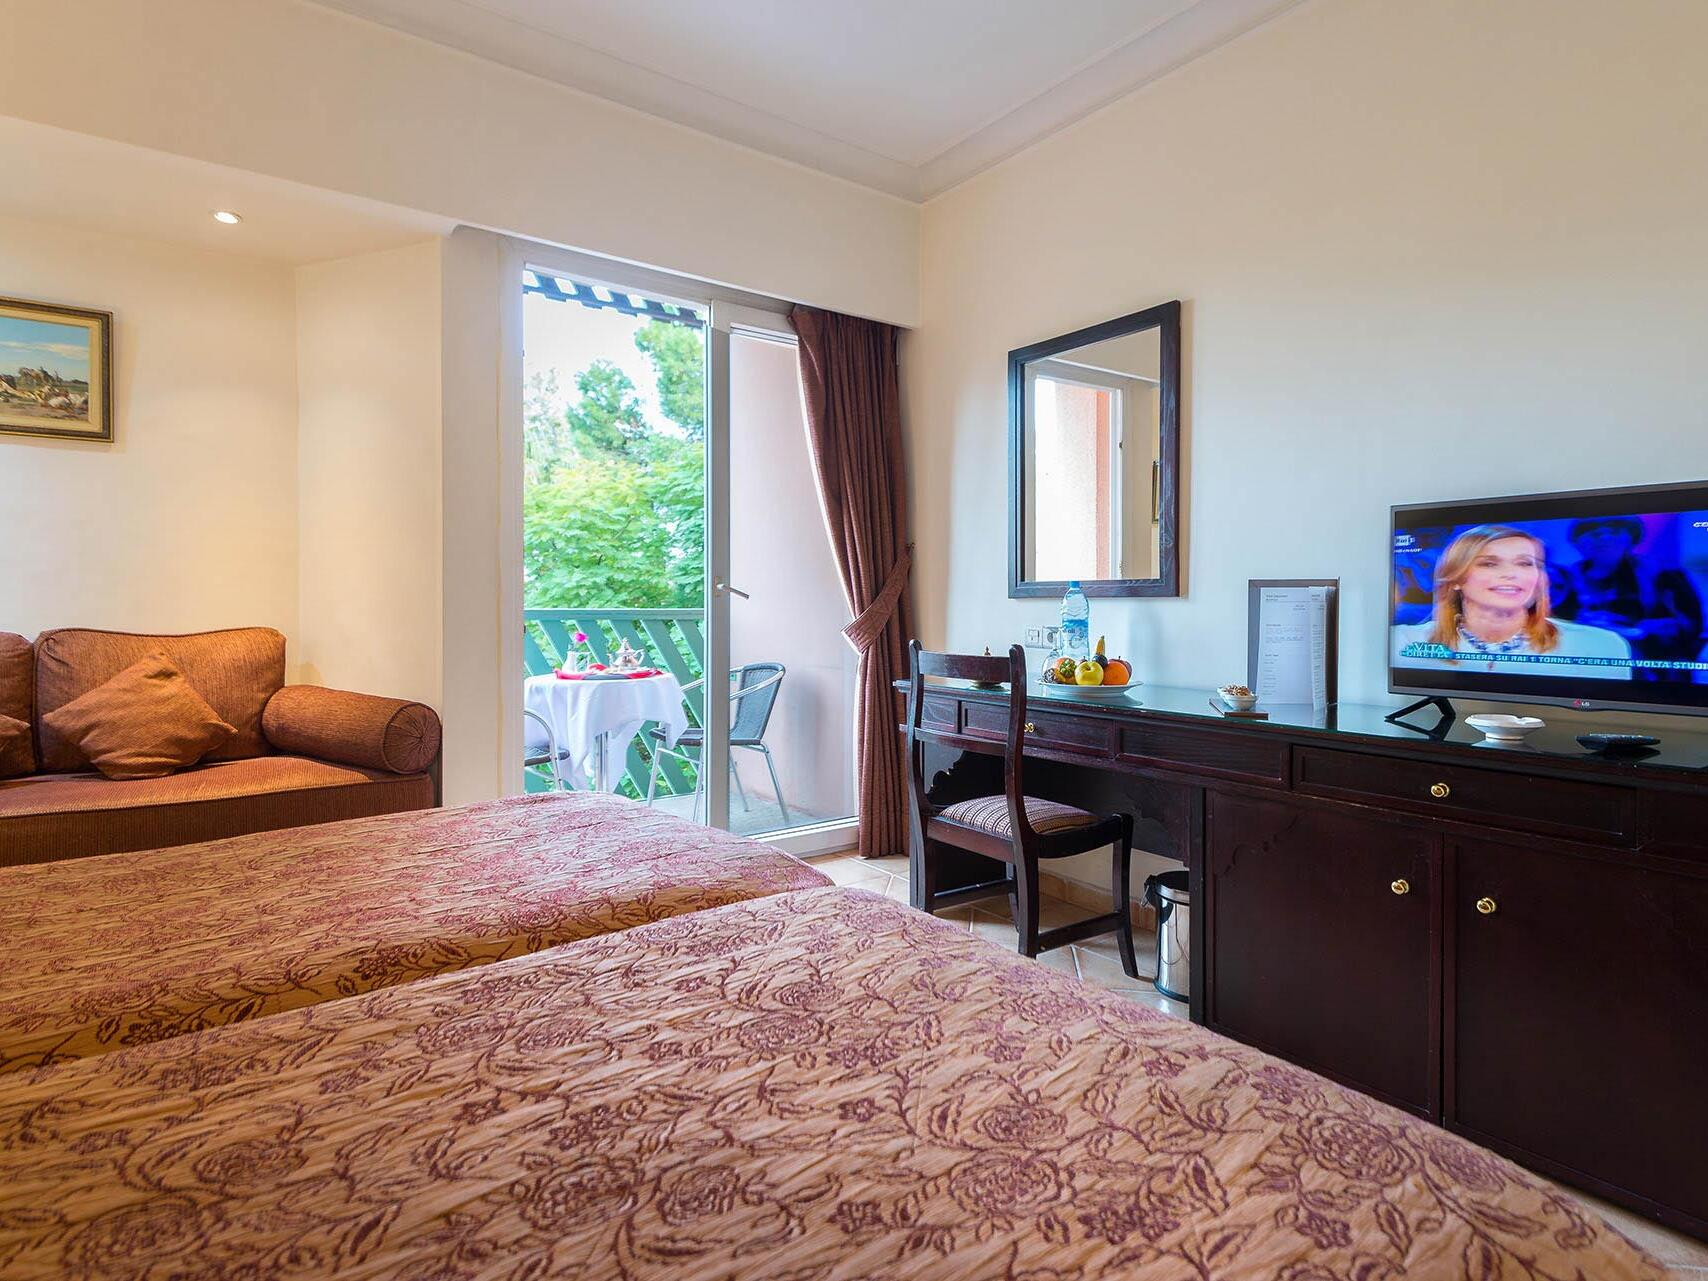 Large Bedroom with TV - Farah Marrakech Hotel